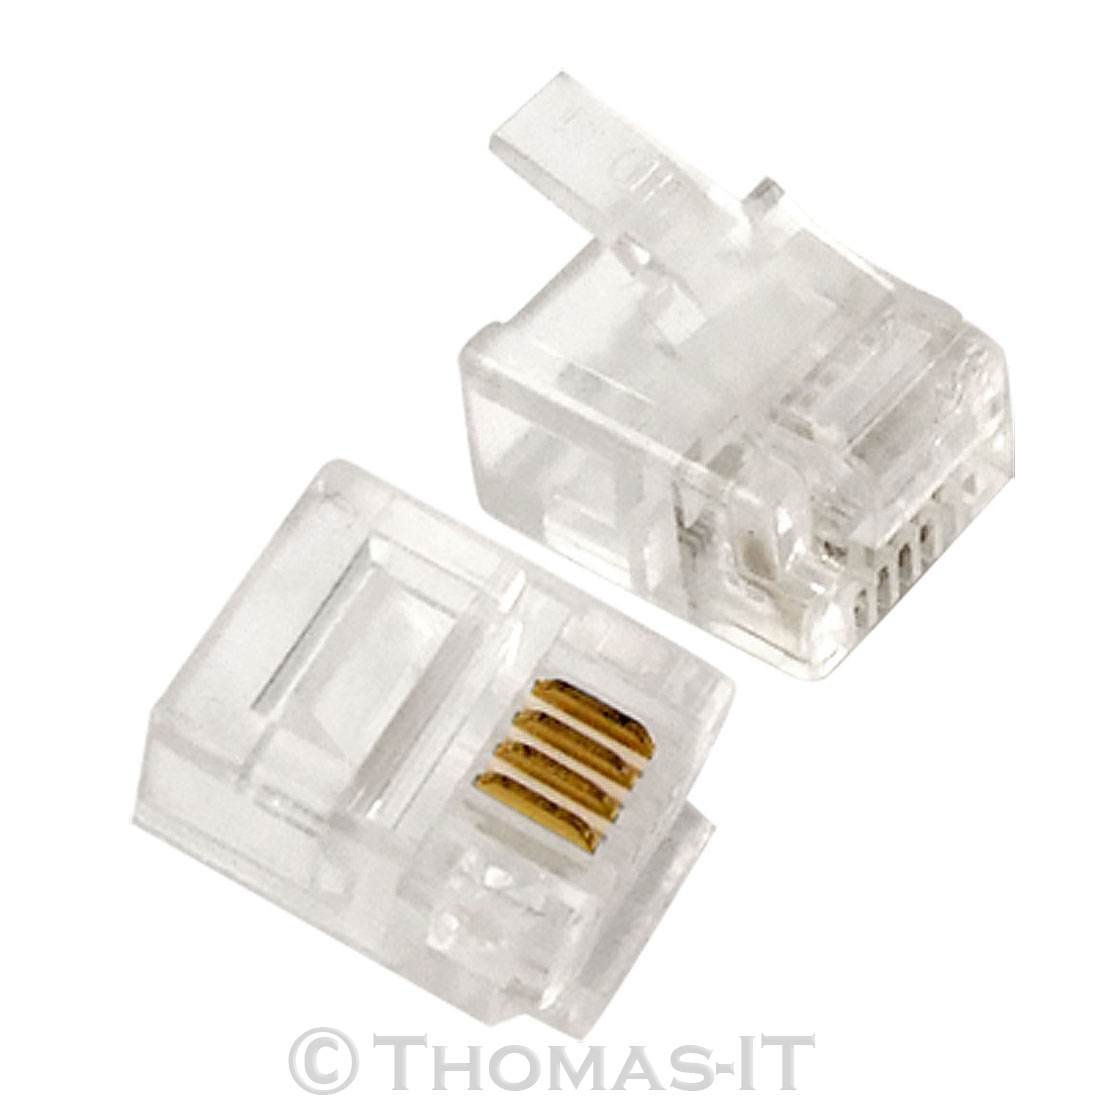 4 pin rj11 phone fax crimp adsl telephone cable lead plastic end connector ebay